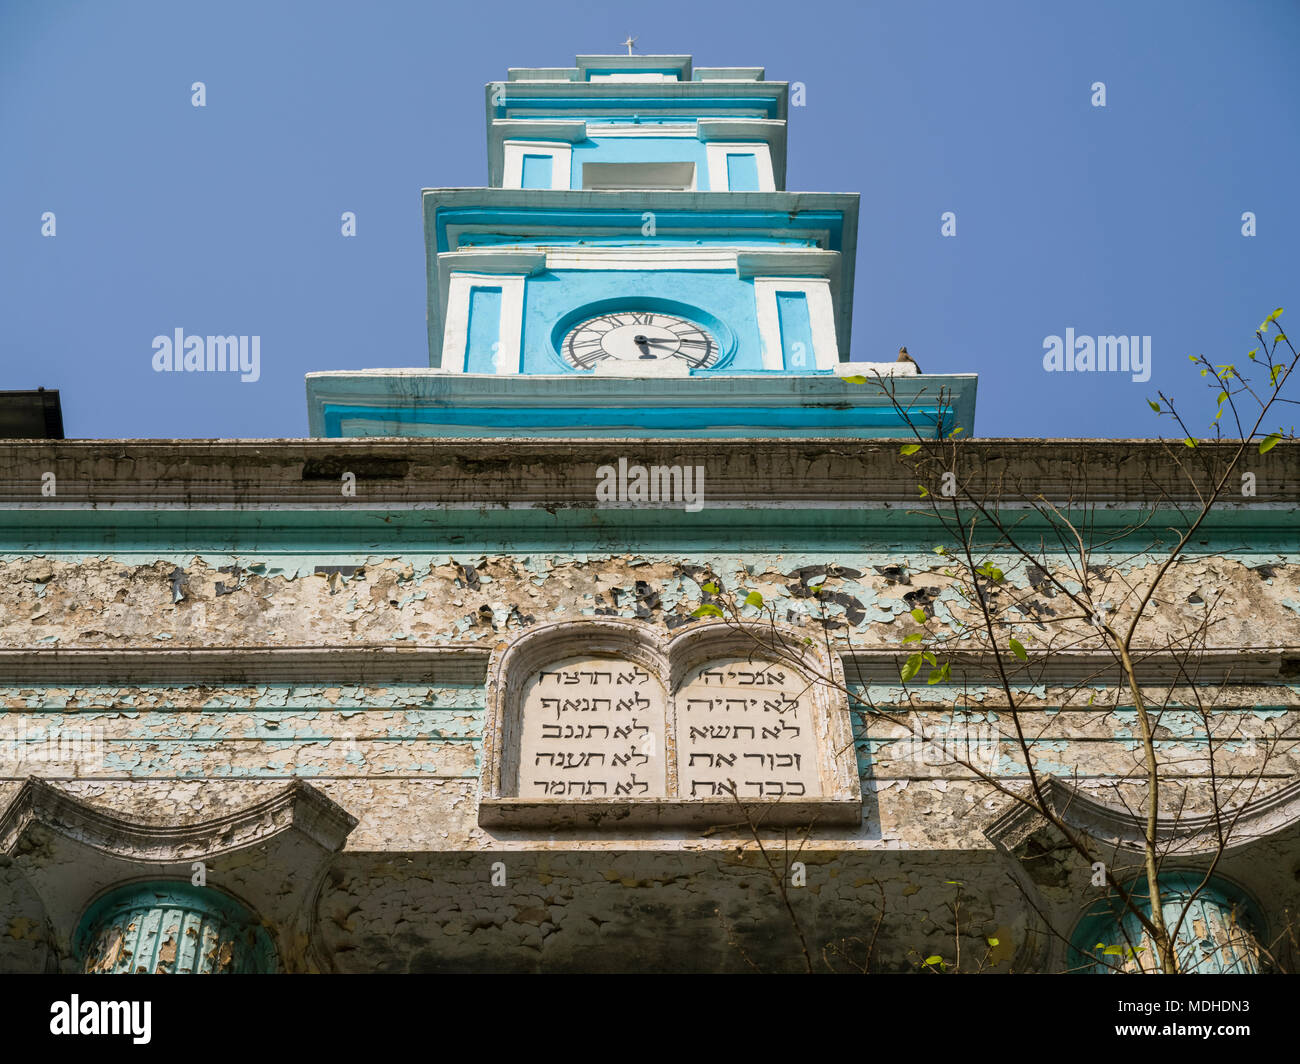 Magen David Synagogue. Built in 1864, this sizable Jewish Synagogue features two schools open to children of all faiths; Mumbai, Maharashtra, India - Stock Image